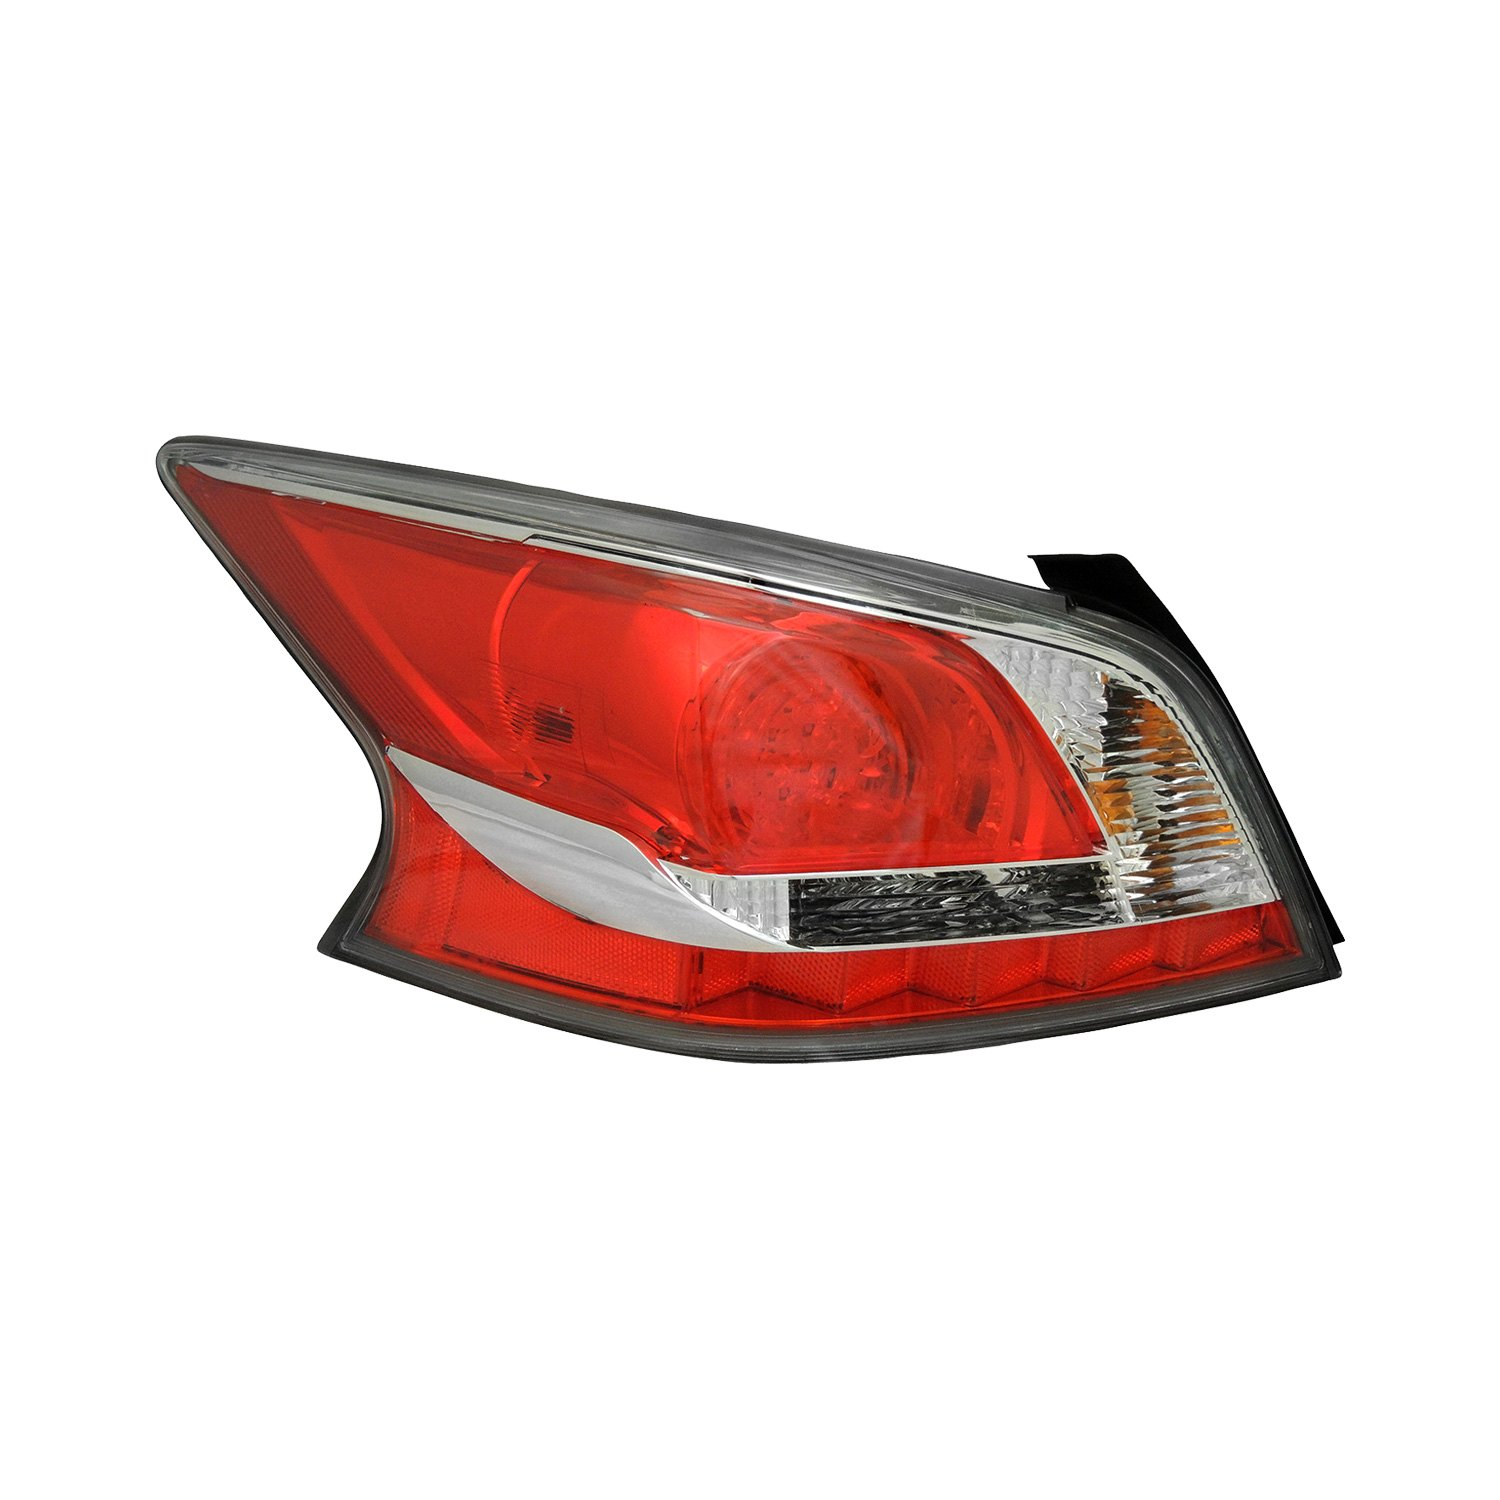 tyc nissan altima 2013 replacement tail light. Black Bedroom Furniture Sets. Home Design Ideas